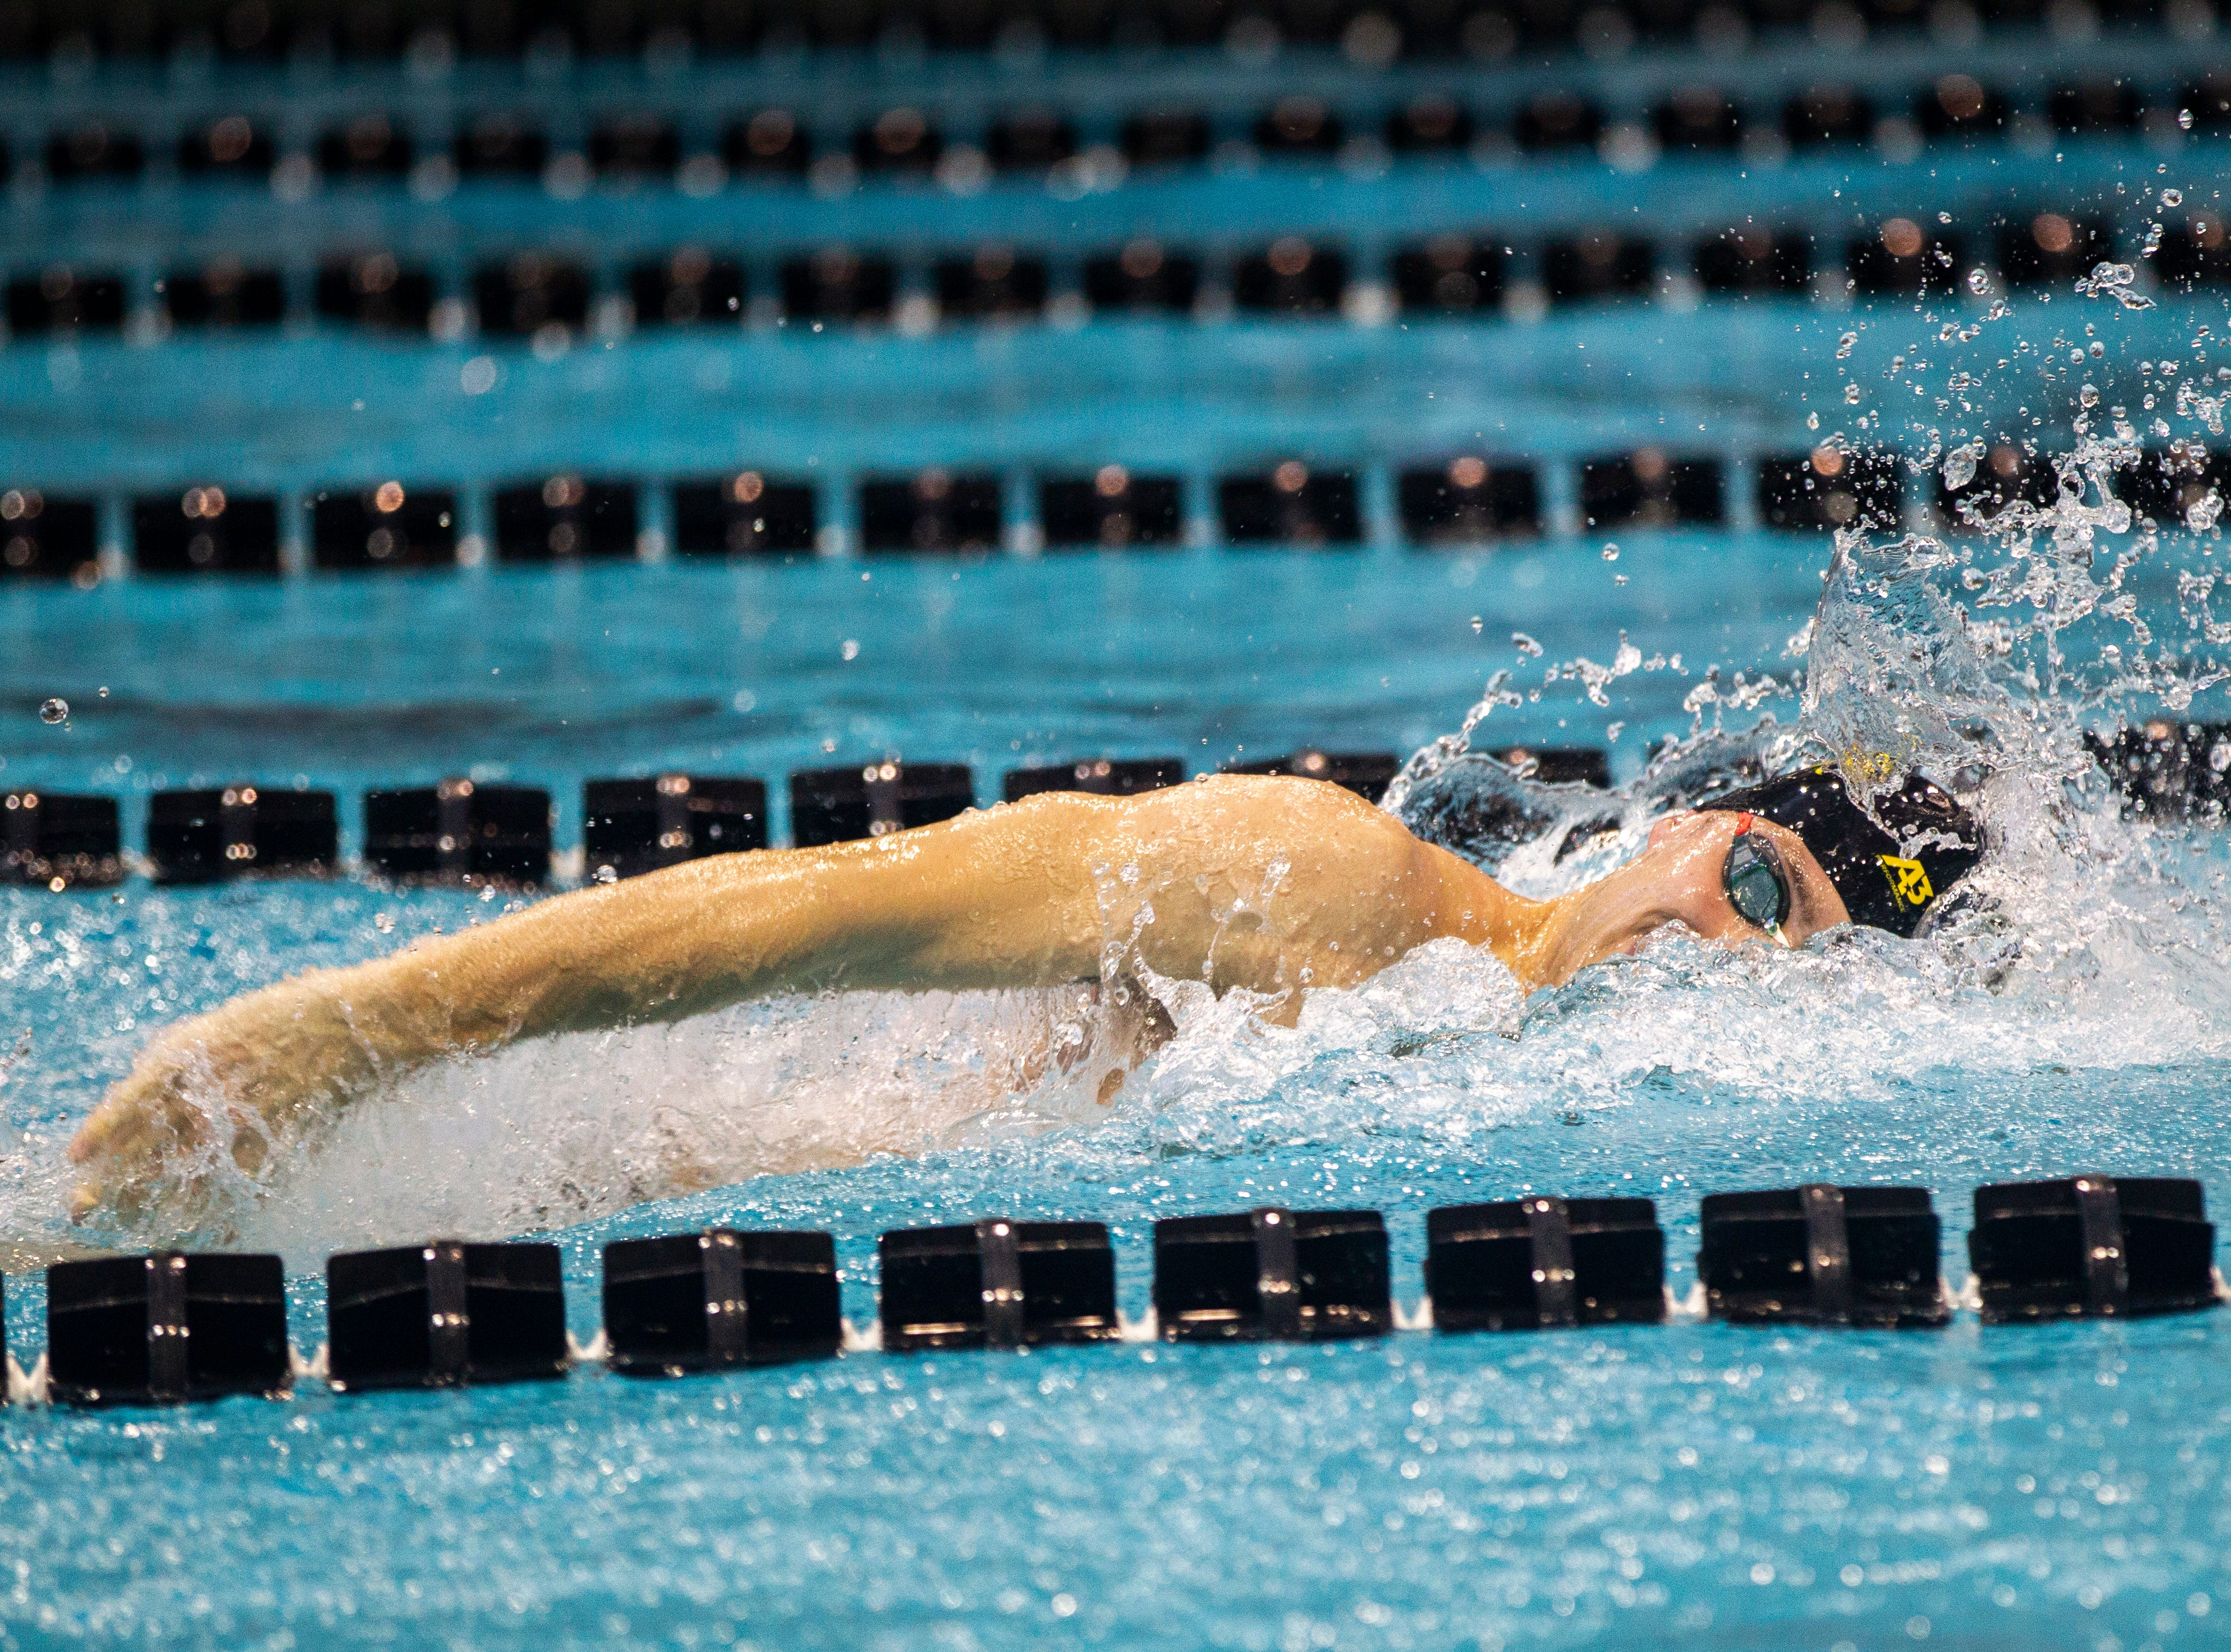 Iowa senior Jack Smith finishes the final stretch of the 400 yard freestyle relay during a NCAA Big Ten Conference swimming meet on Saturday, Jan. 19, 2019, at the Campus Recreation and Wellness Center in Iowa City, Iowa. Smith brought in the win with a final time of 2:57.41.